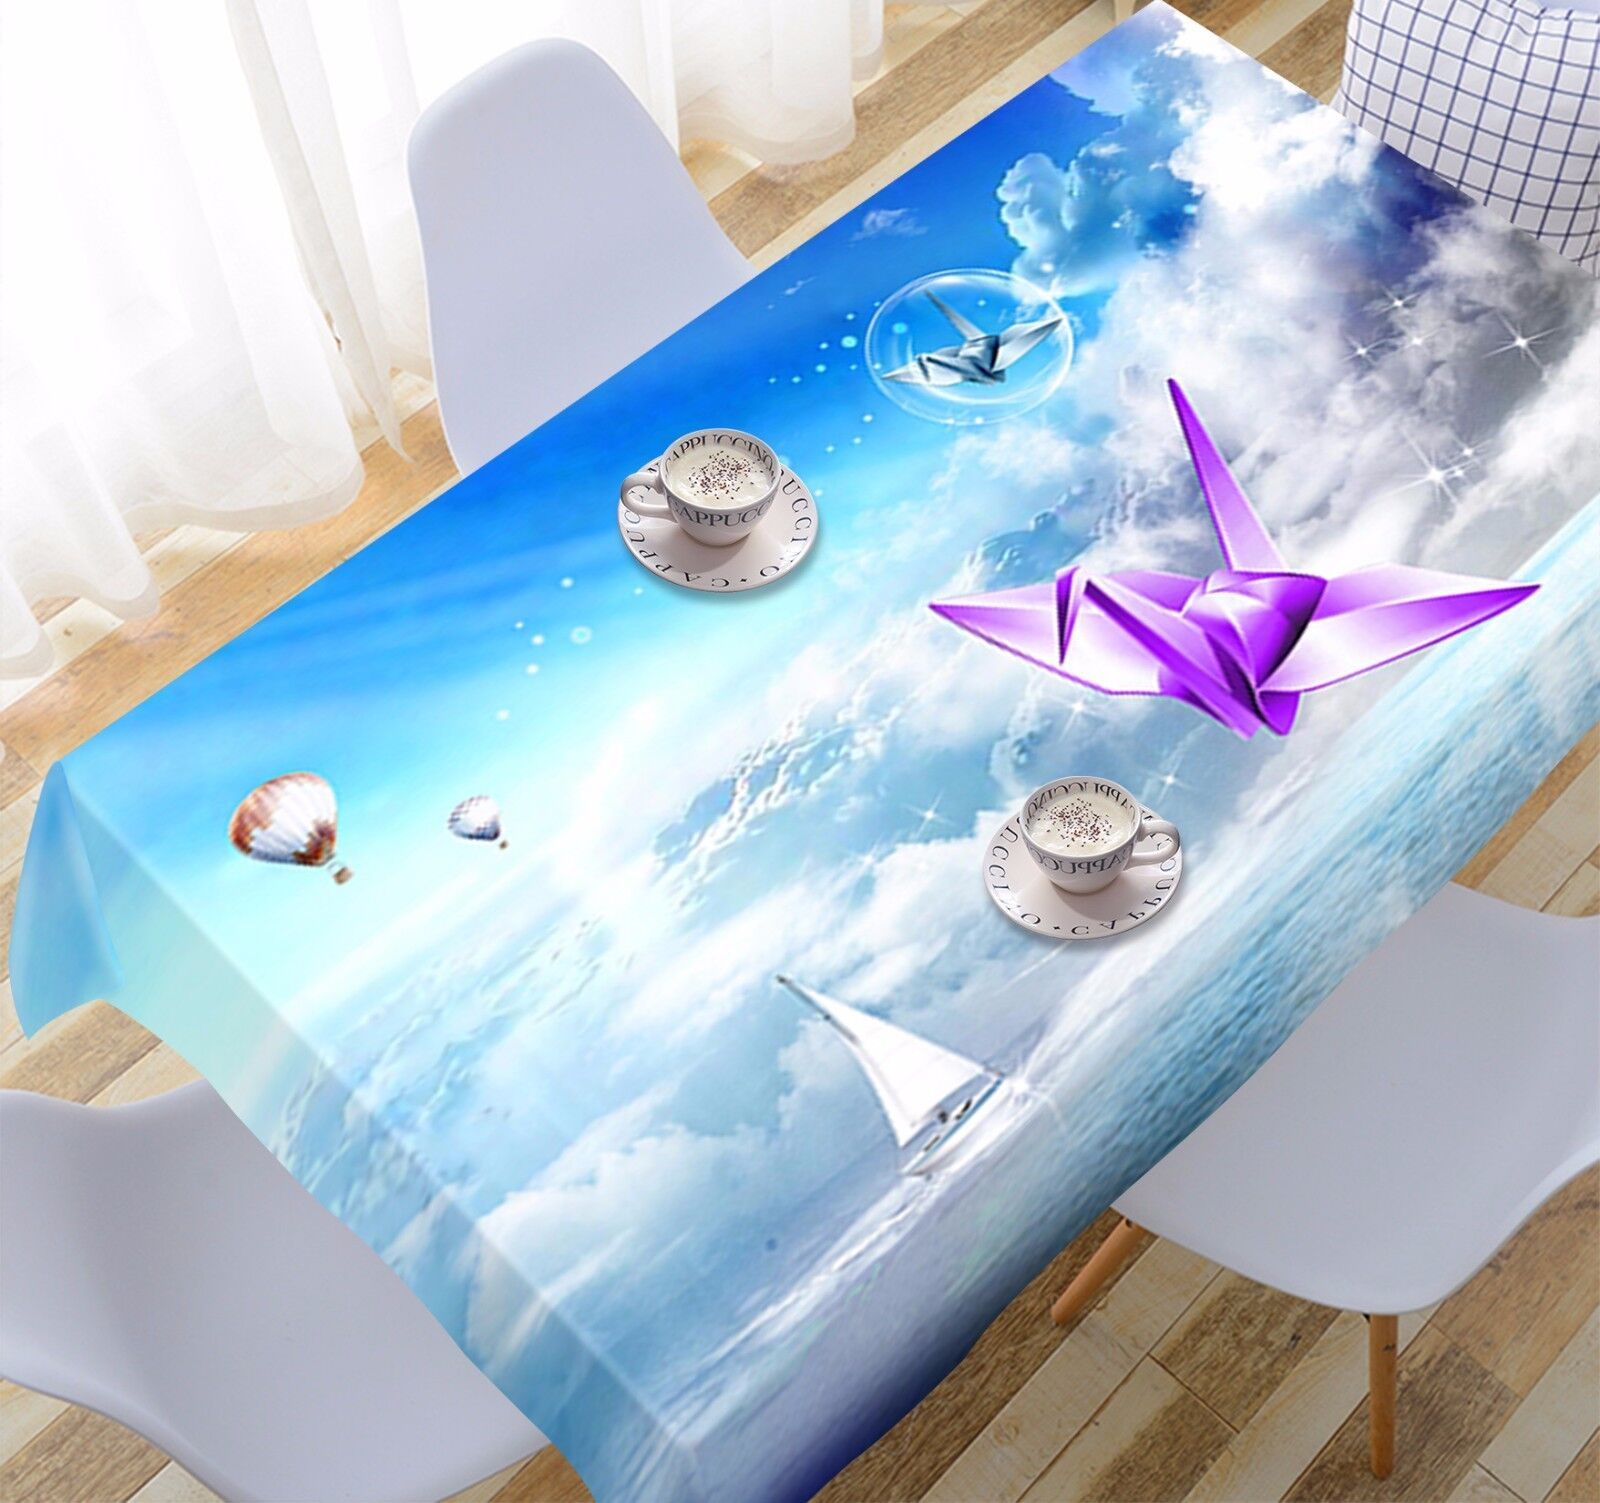 3D Origami 93 Tablecloth Table Cover Cloth Birthday Party Event AJ WALLPAPER UK